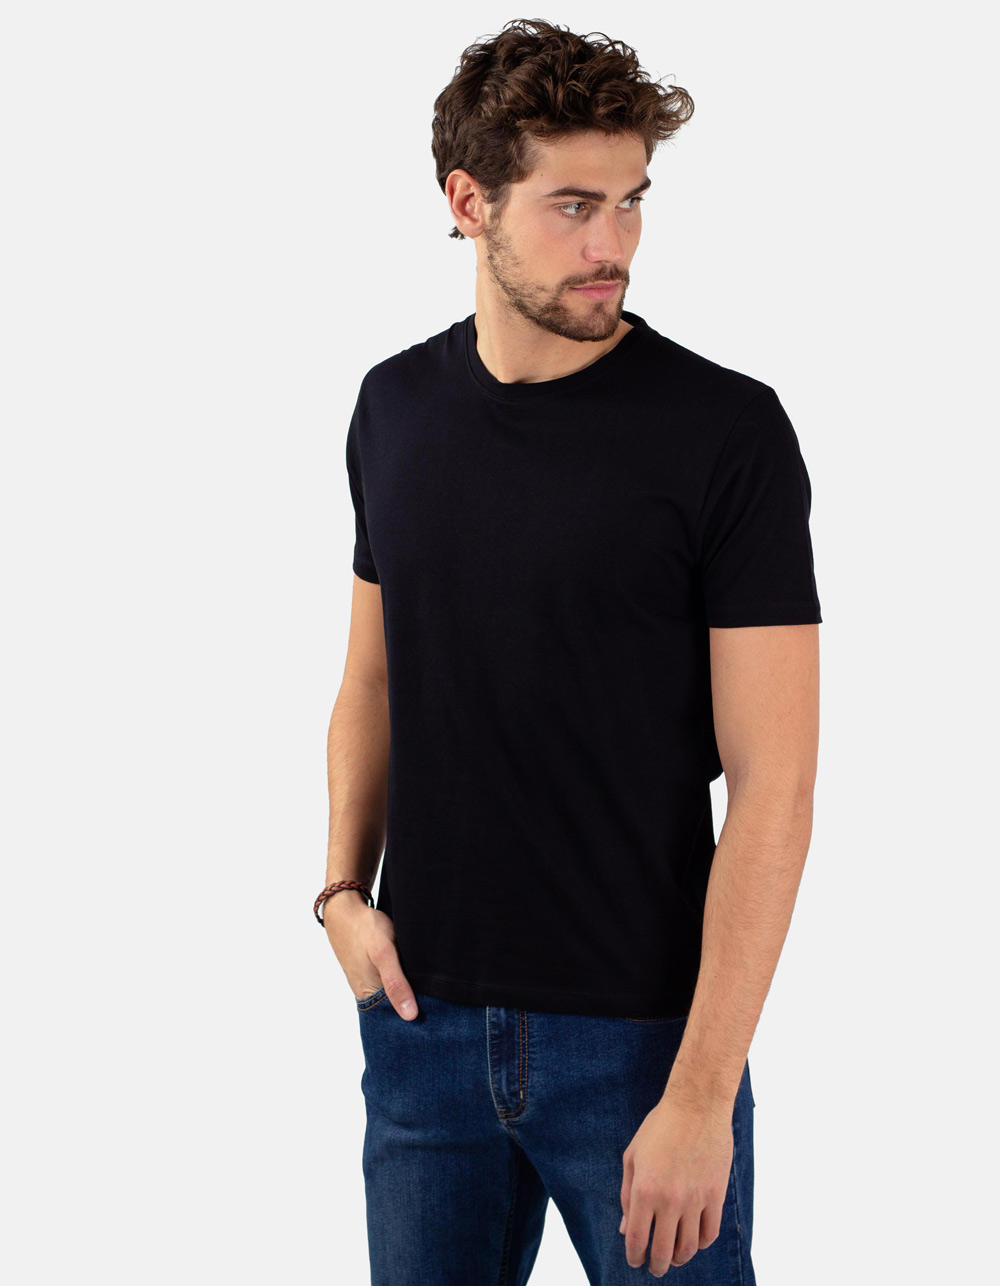 Black round collar t-shirt